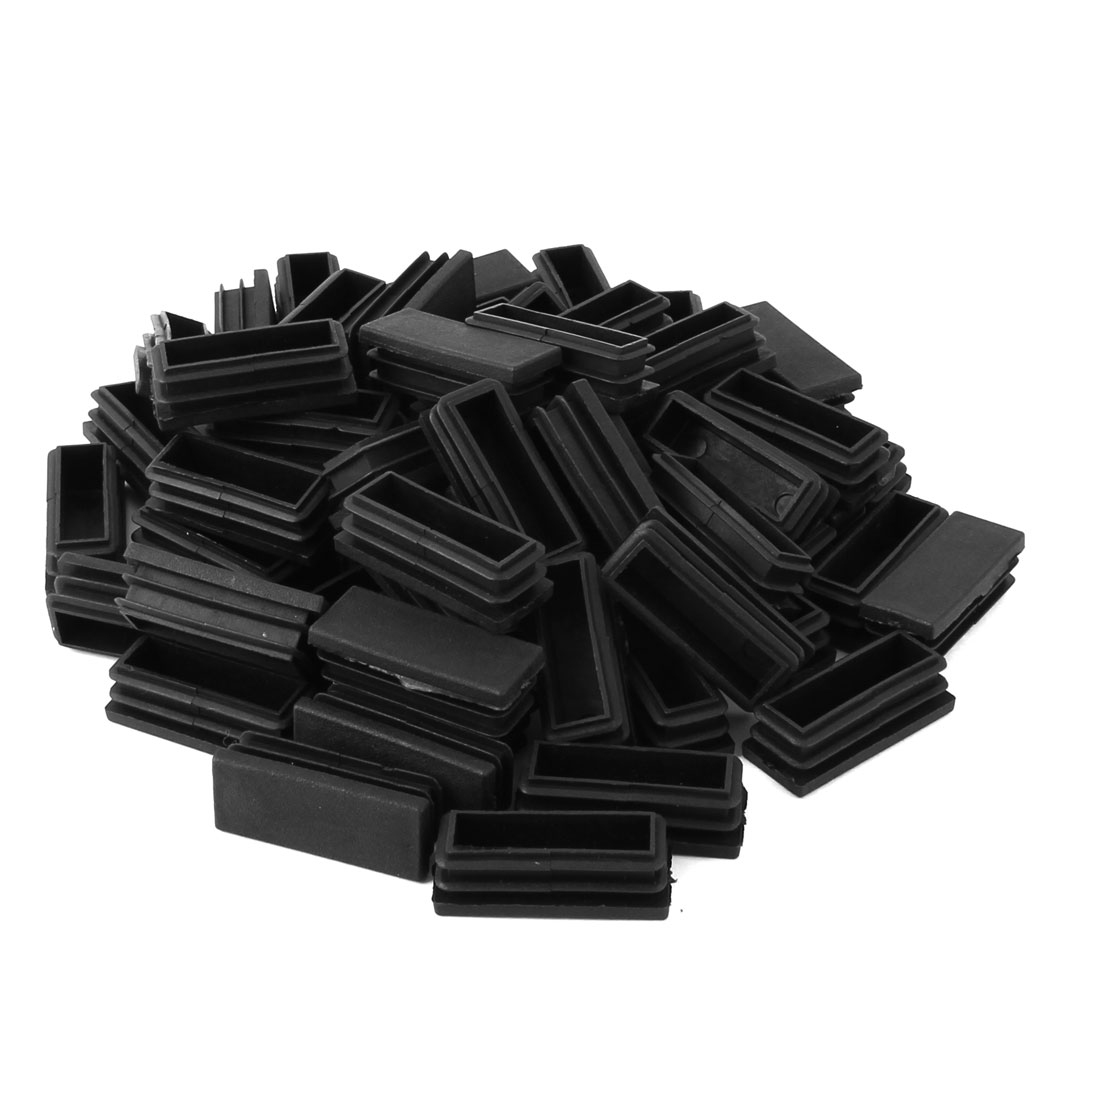 Home Plastic Rectangle Floor Protecting Furniture Table Leg Tube Inserts Black 50 x 20mm 60pcs